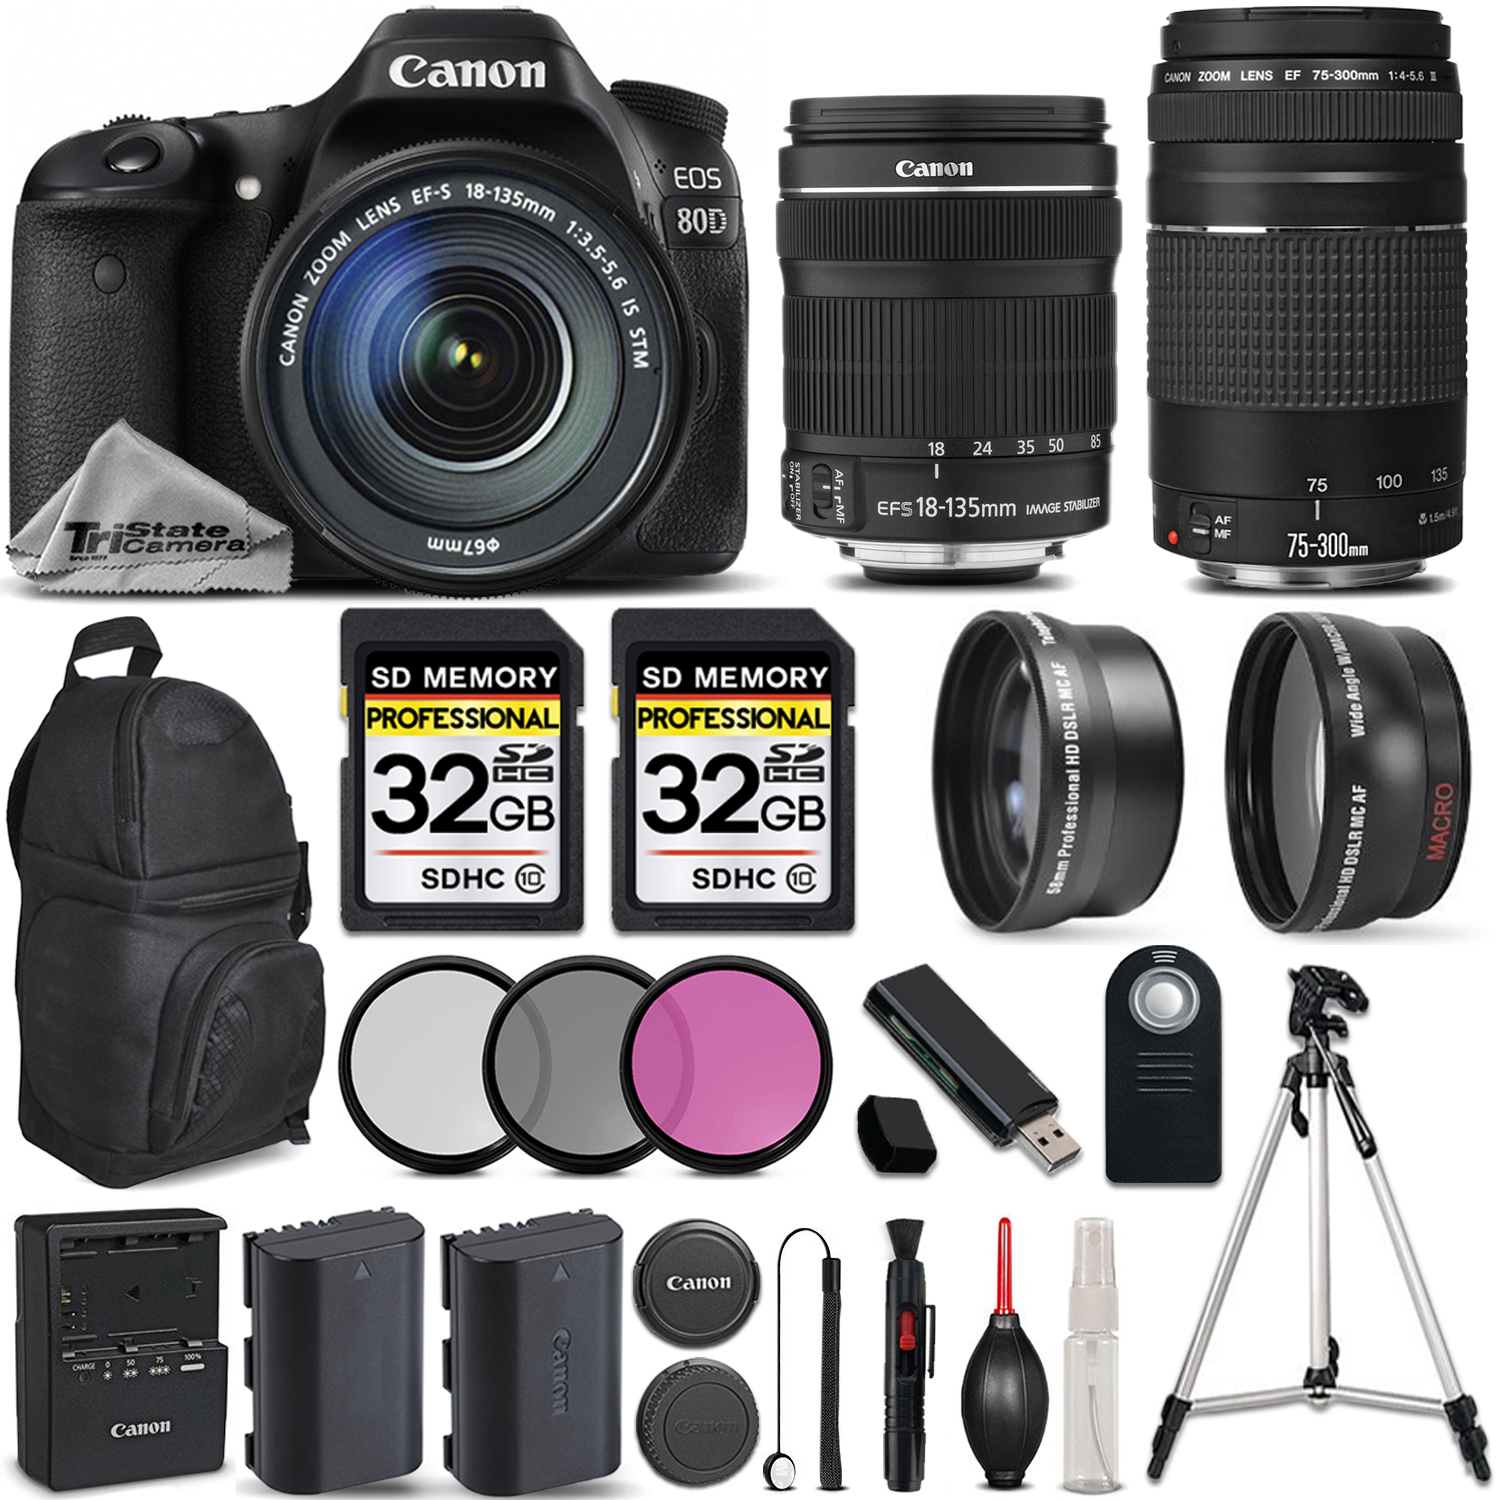 EOS 80D DSLR Camera with Canon 18-135mm IS STM Lens + Canon 75-300 III *FREE SHIPPING*